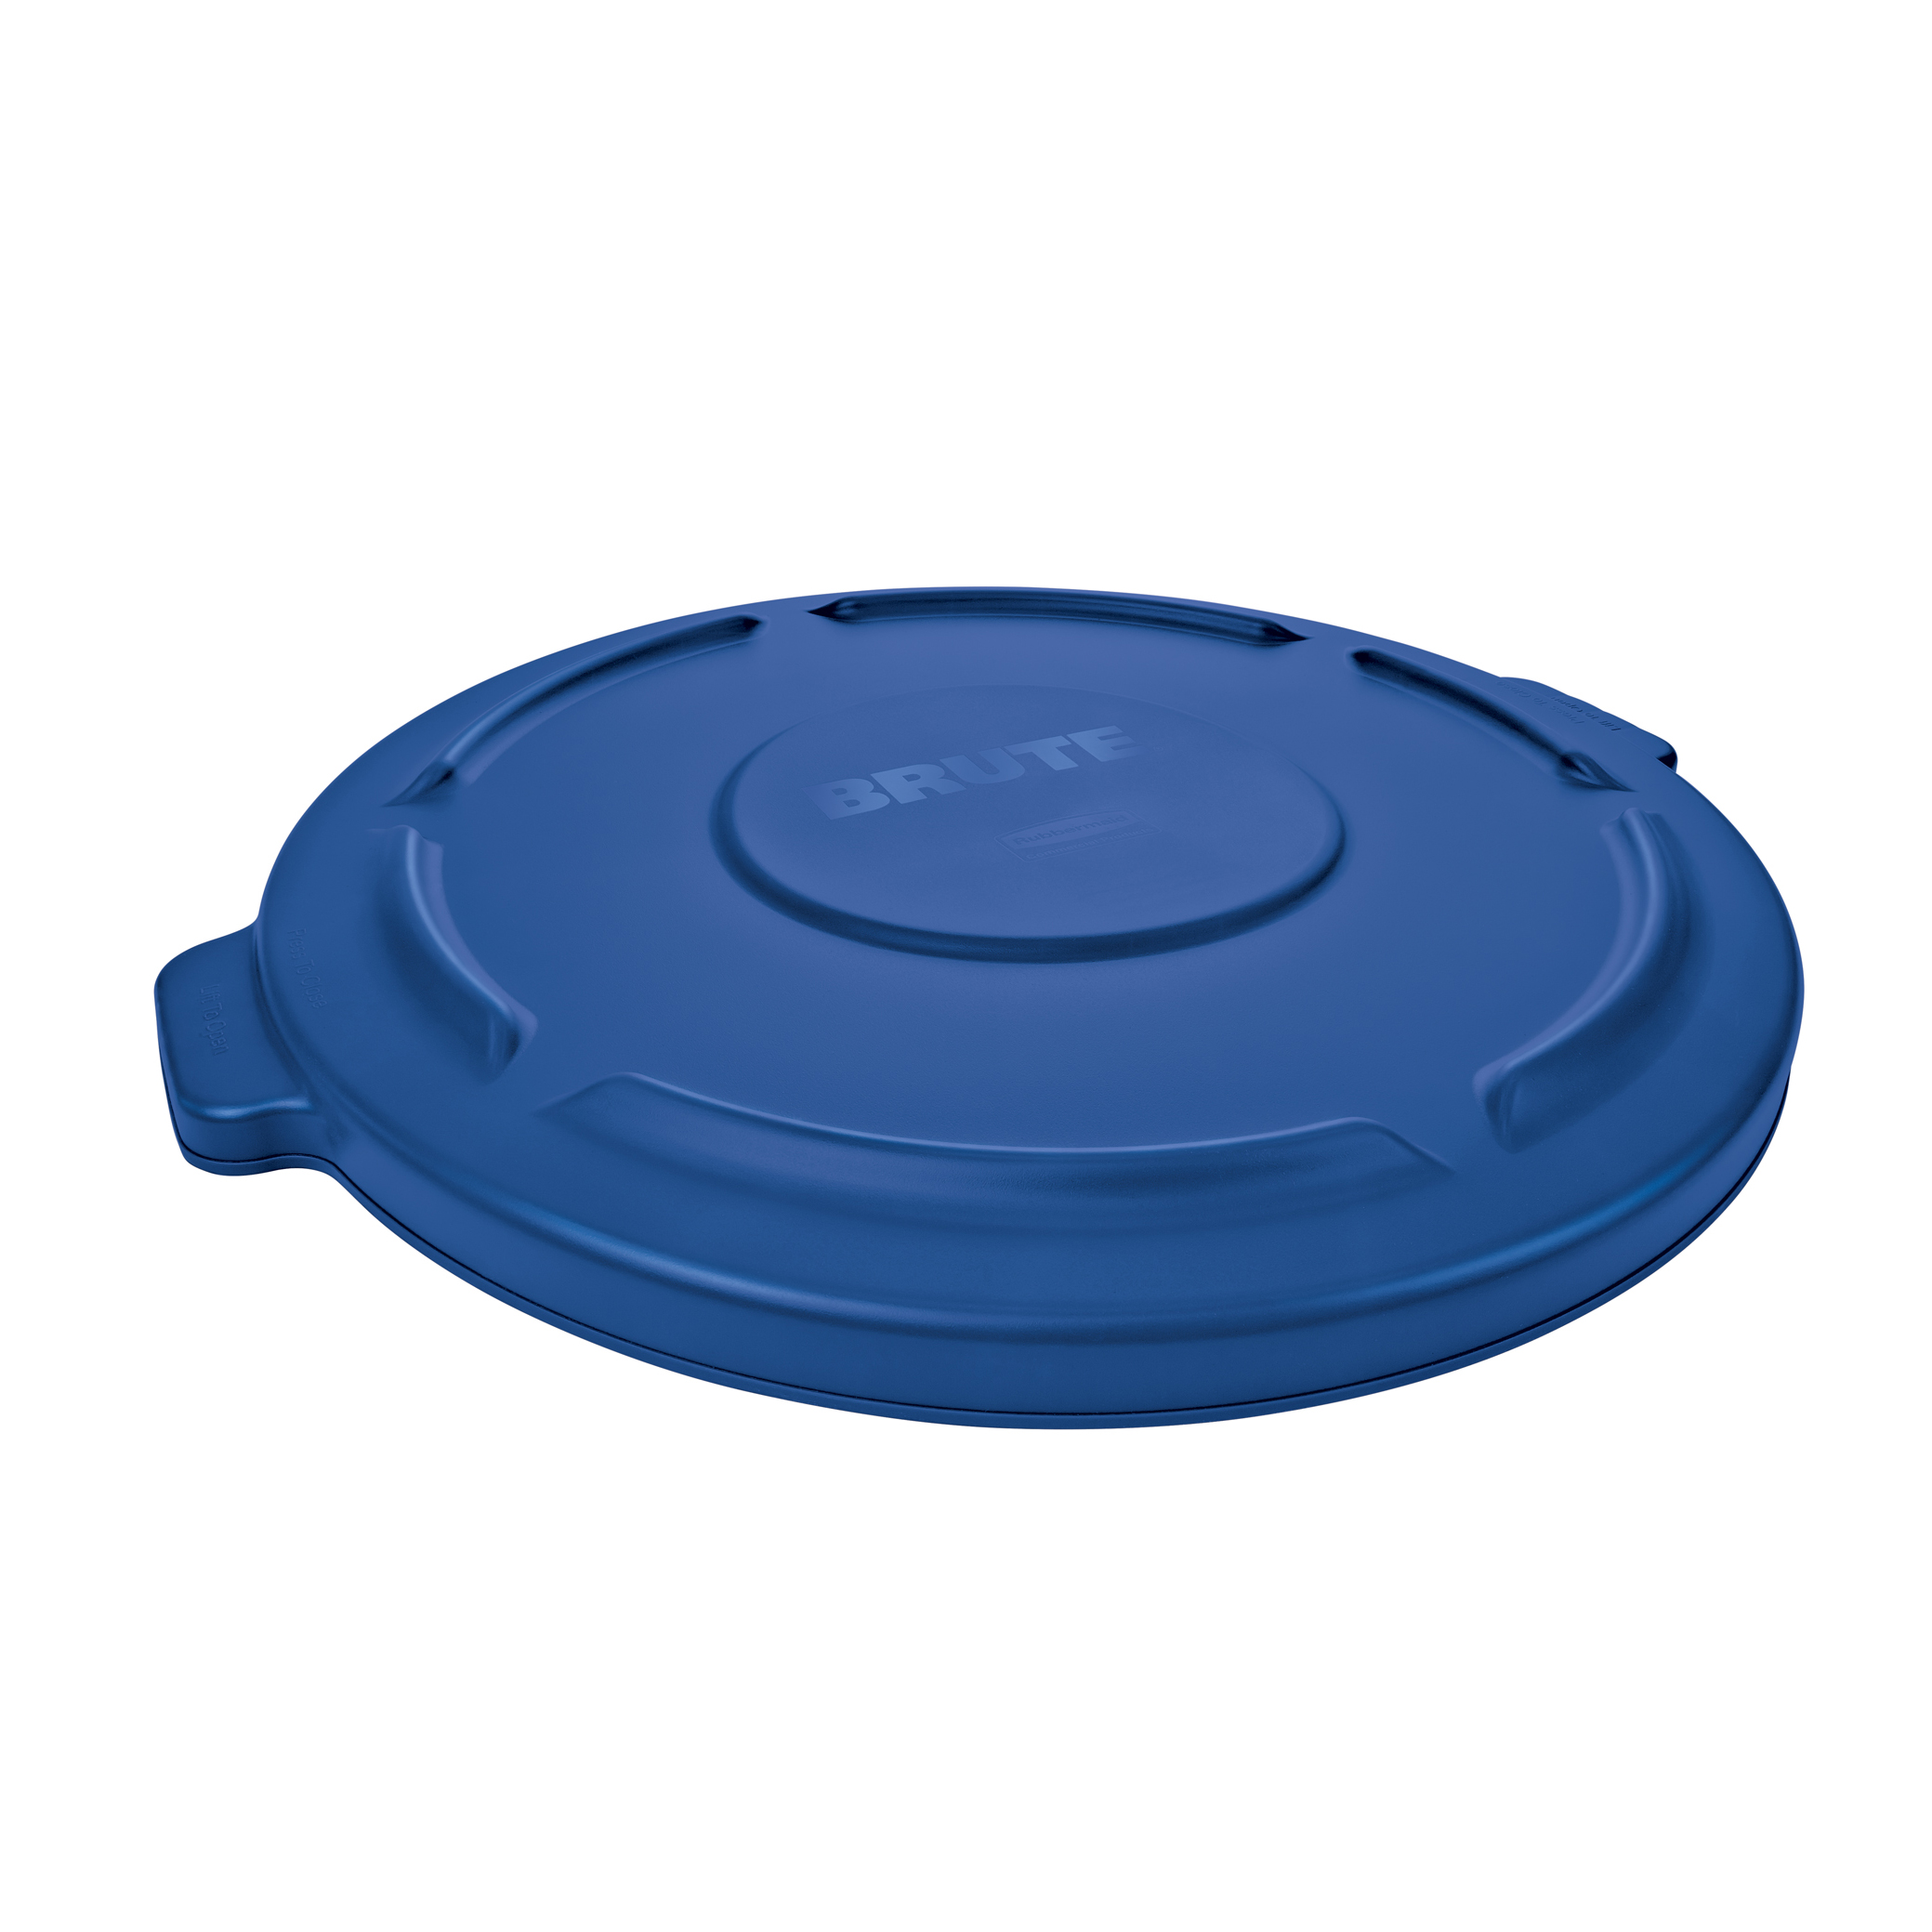 Rubbermaid Commercial Products 1779636 trash receptacle lid / top